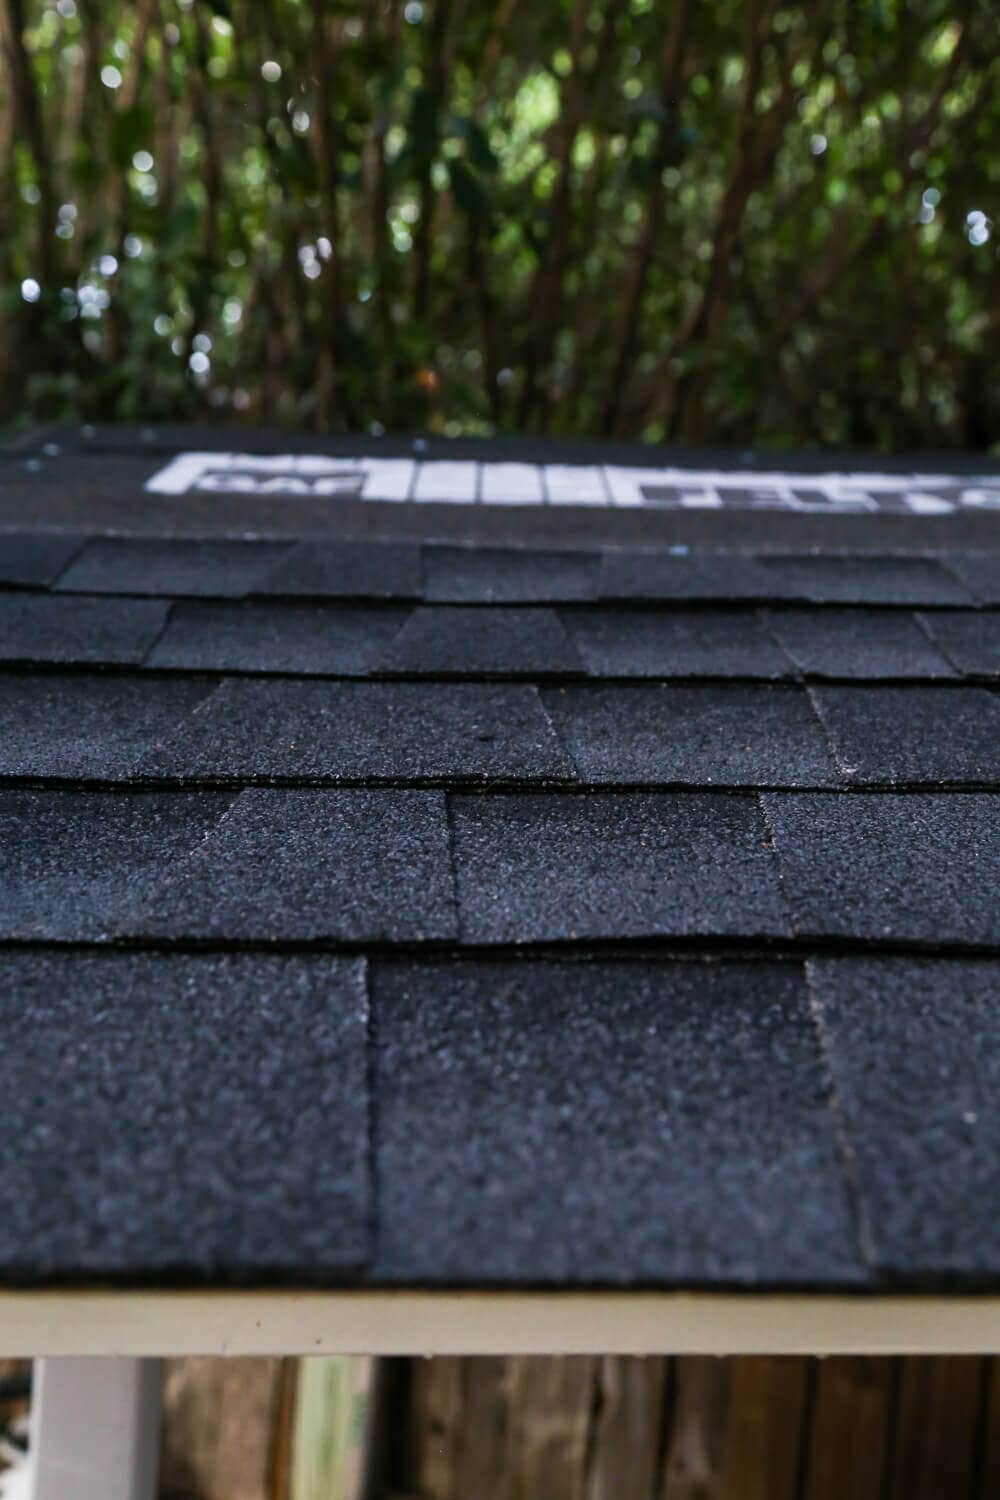 close-up of DIY-installed shingles